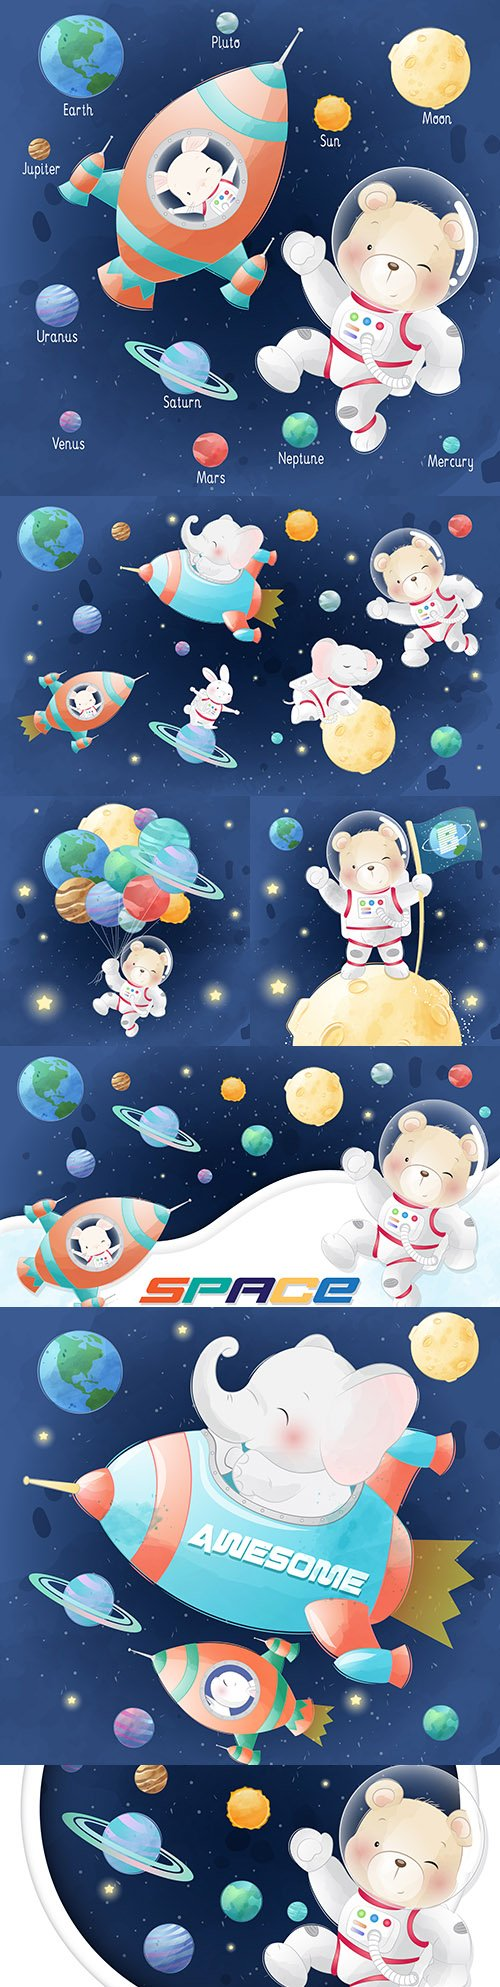 Cute bear and bunny in galaxy with planets